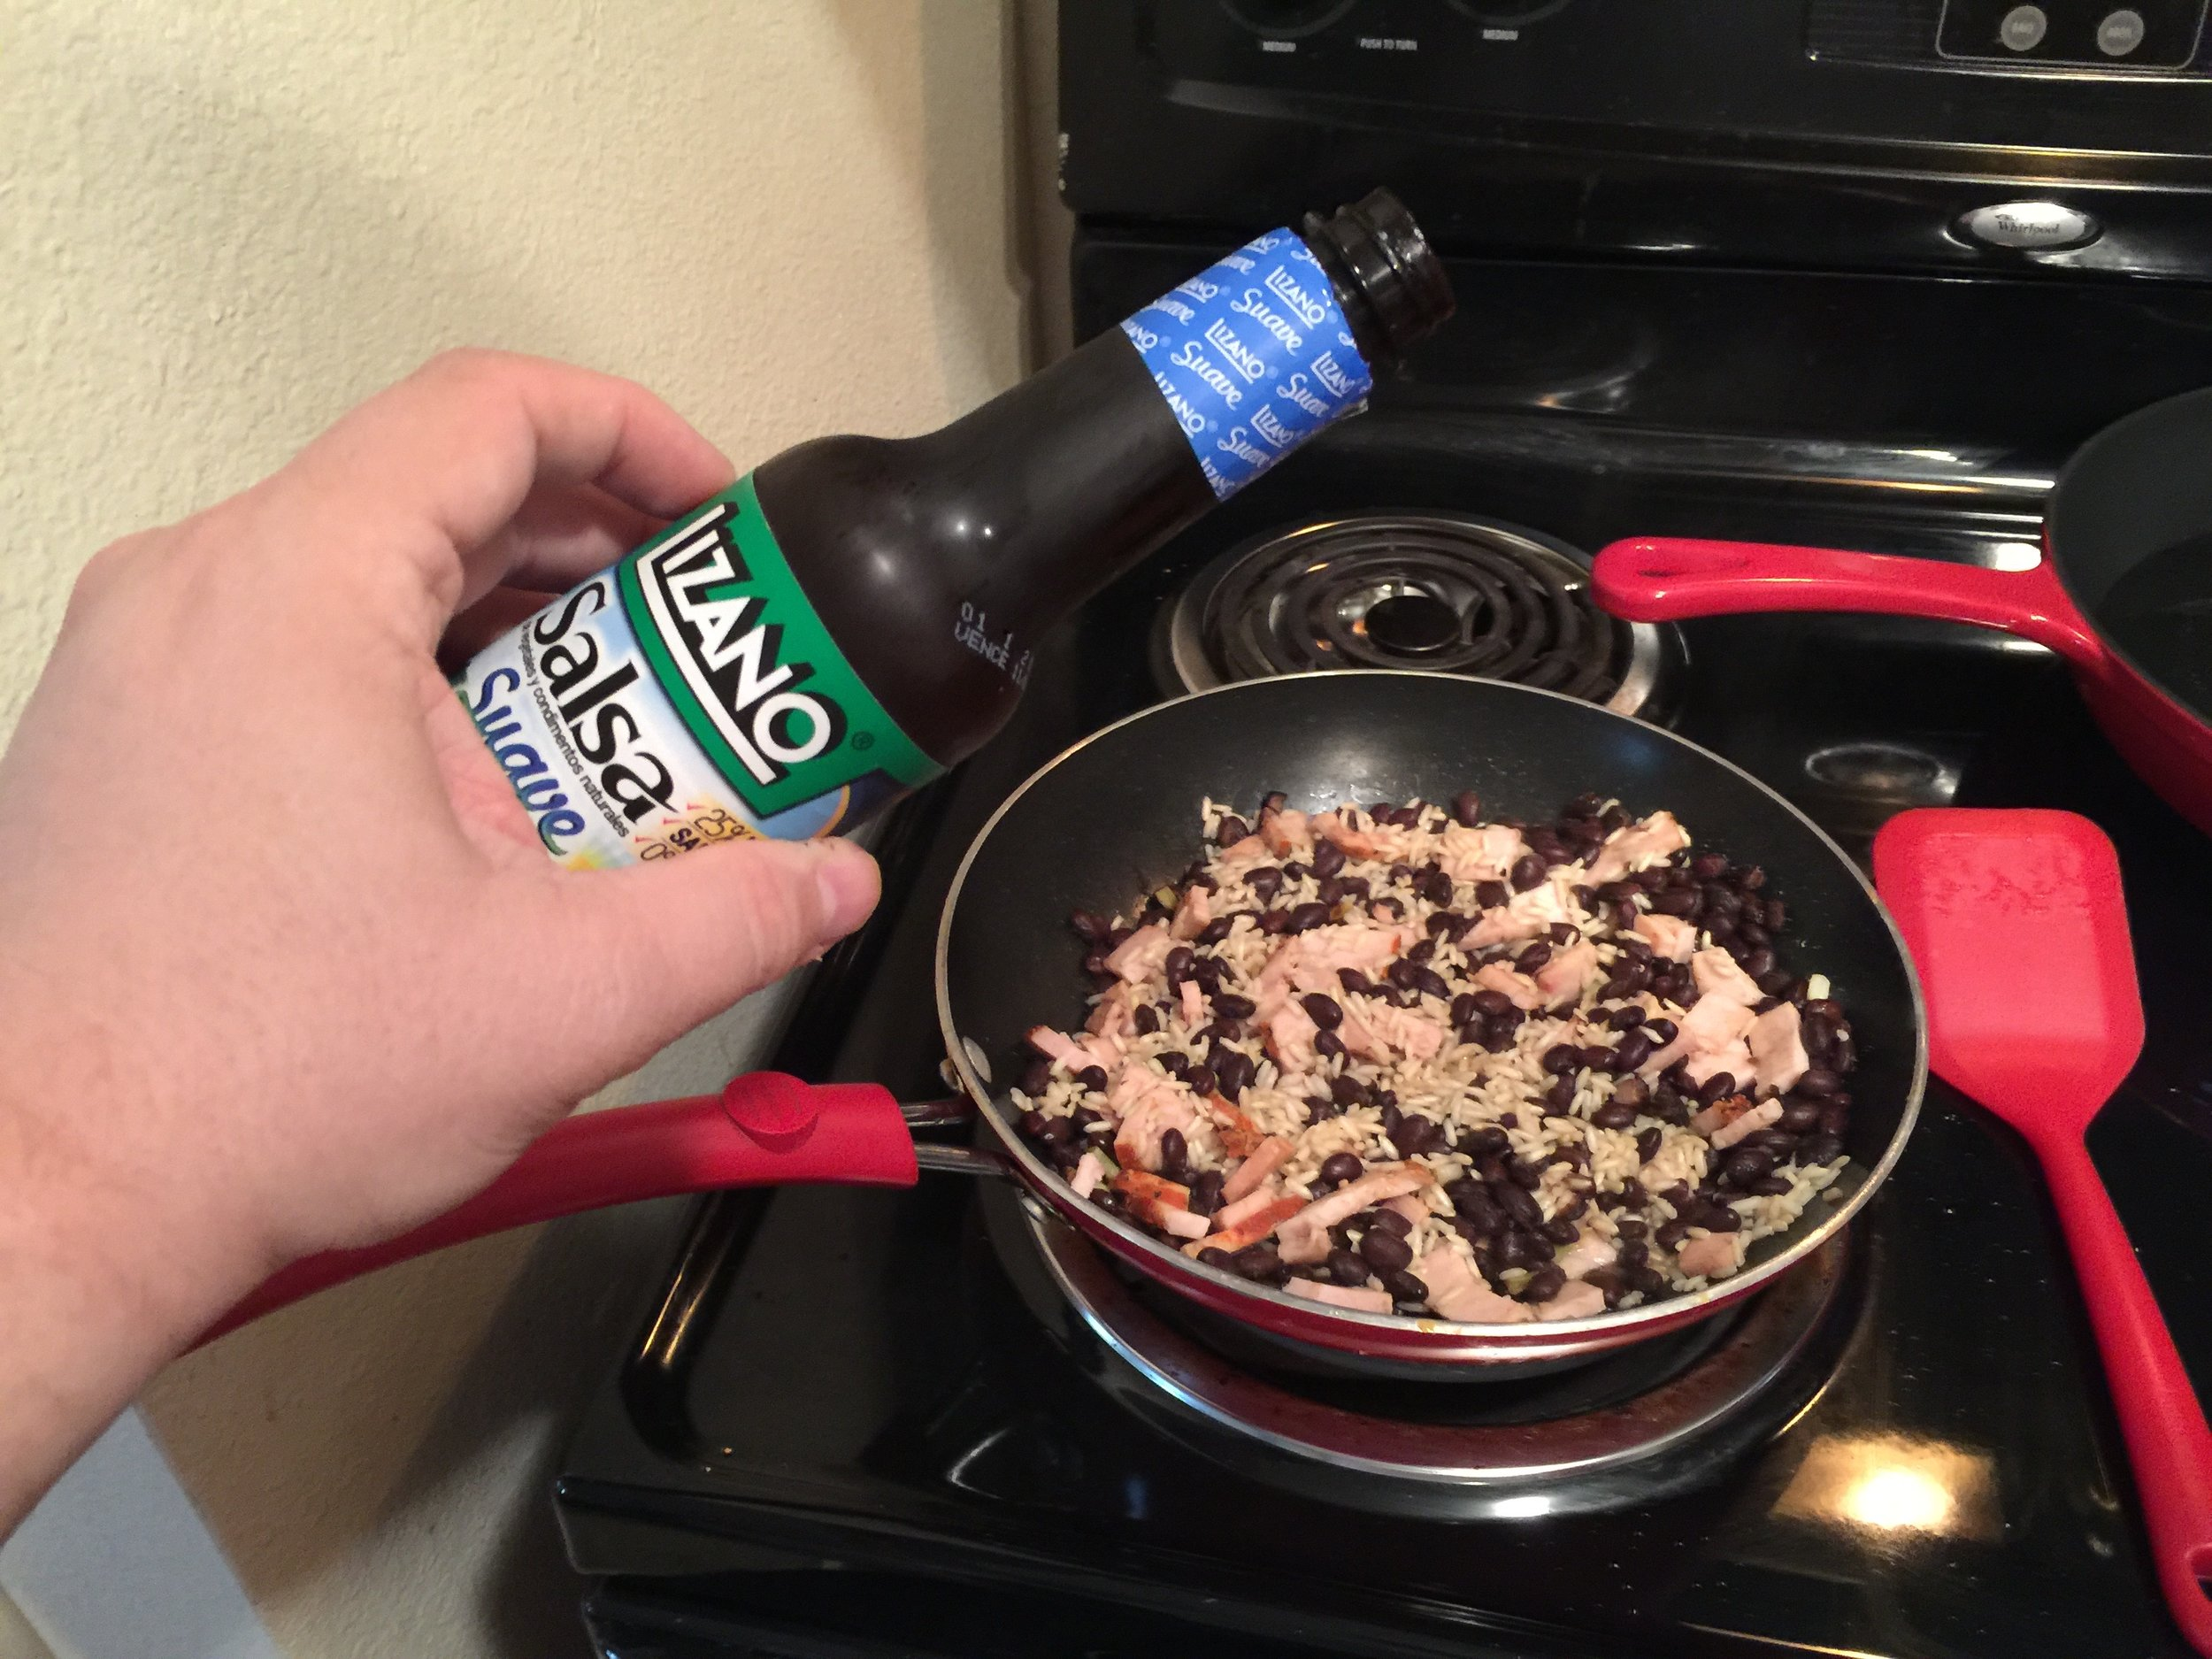 Lizano Sauce - This sauce is an important part of the taste of gallo pinto.